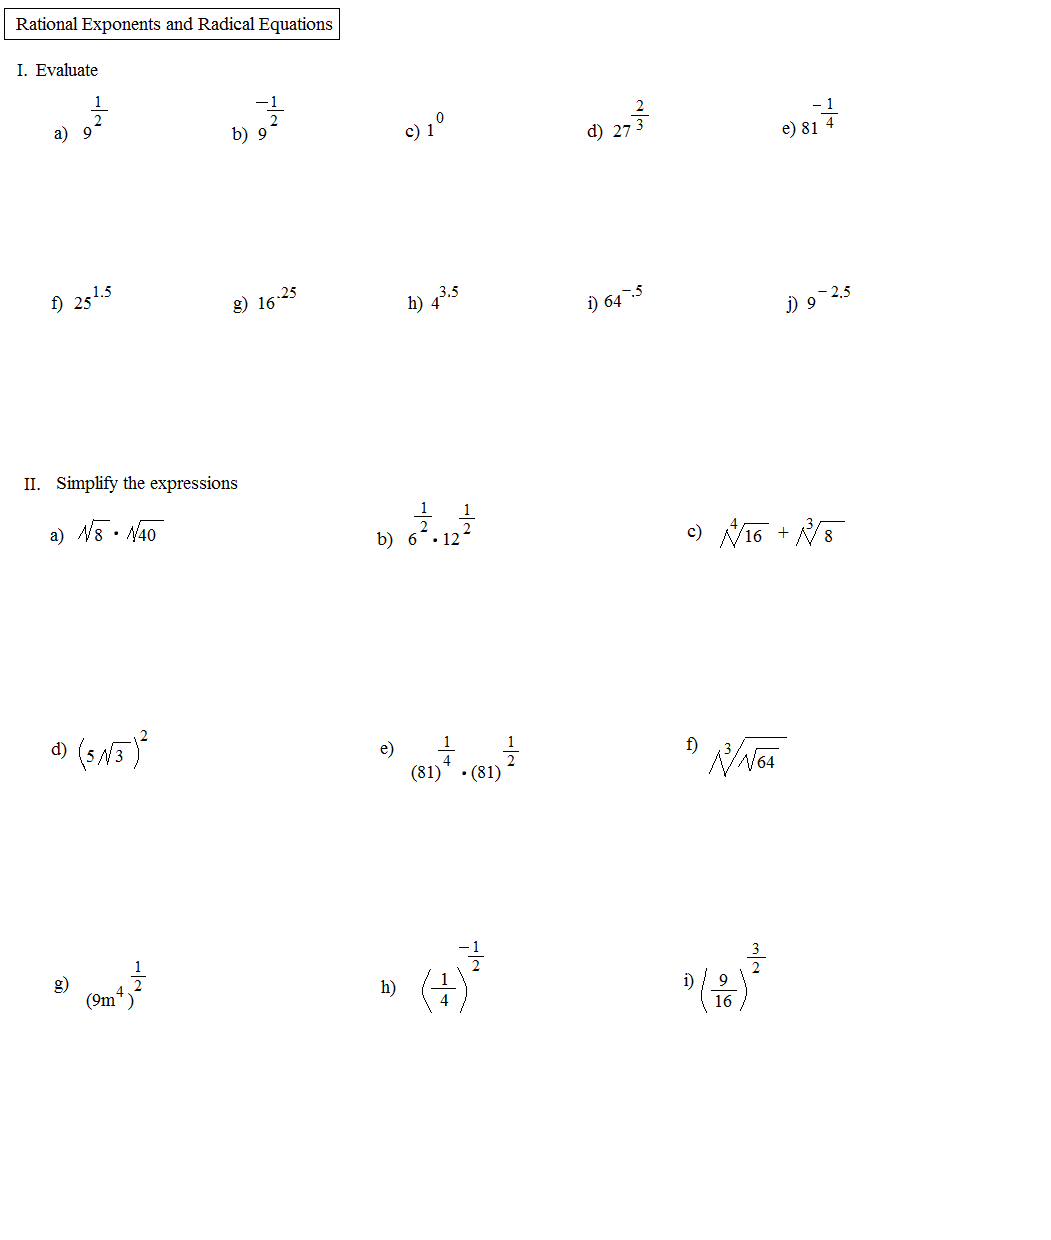 Worksheets Exponents Worksheets With Answers math plane rational exponents and radical equations exercise